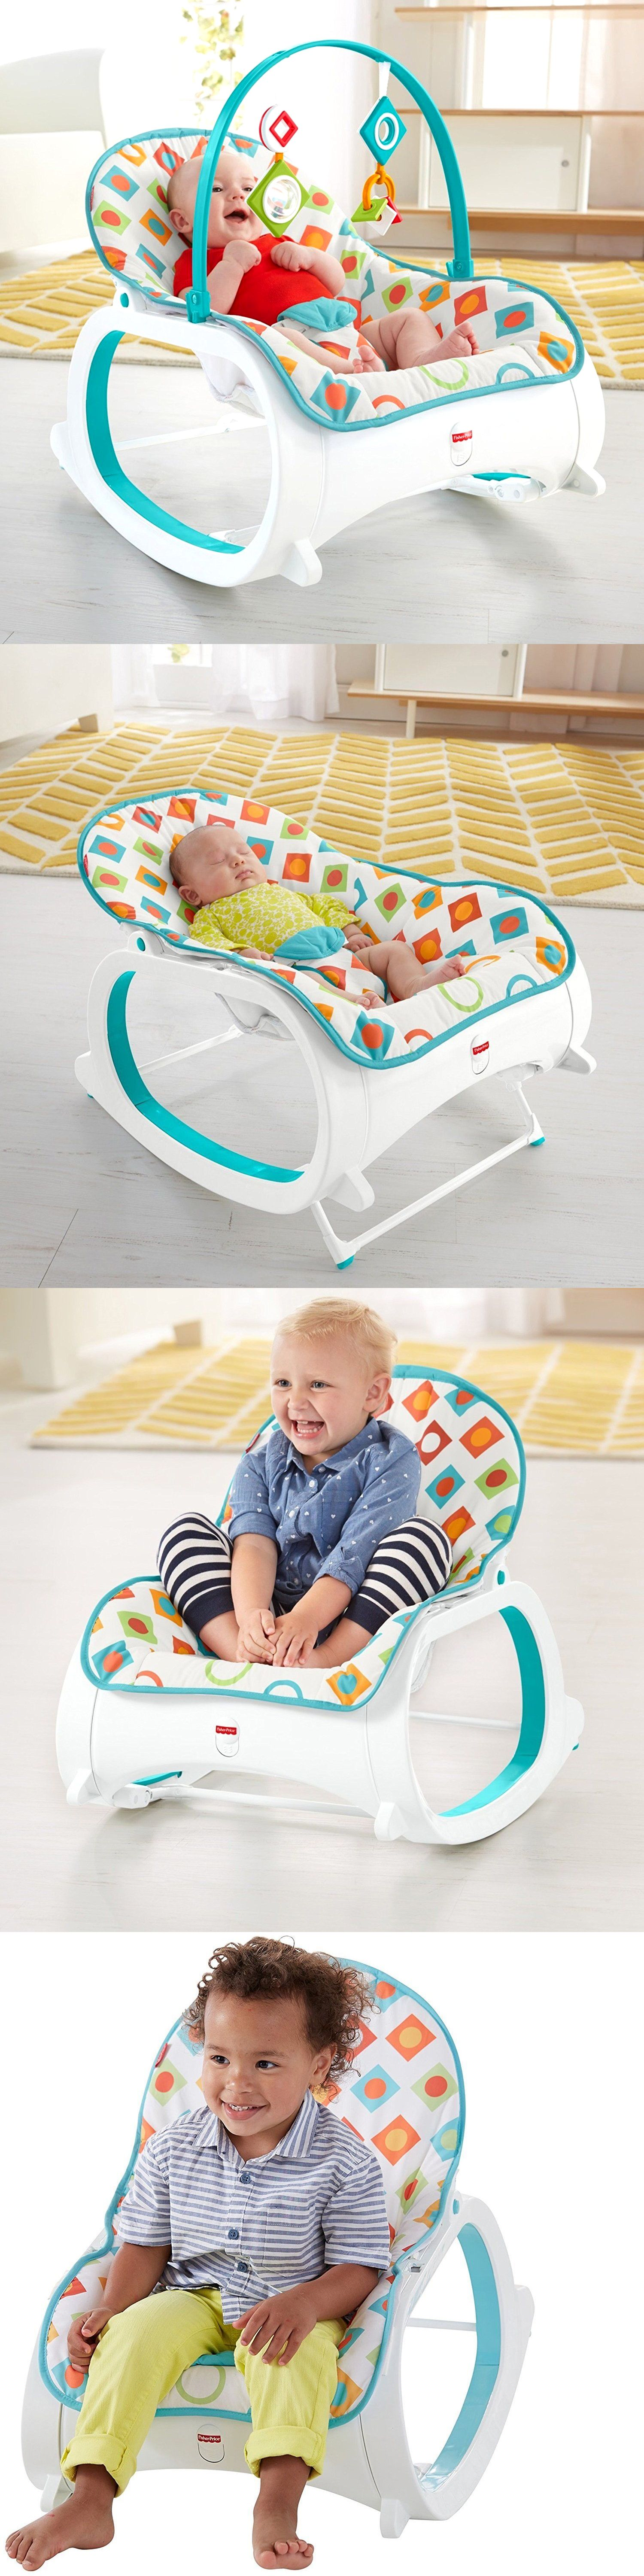 115a46243 Infant-to-Toddler Baby Rocker Bouncer Seat Chair Sleeper Swing ...